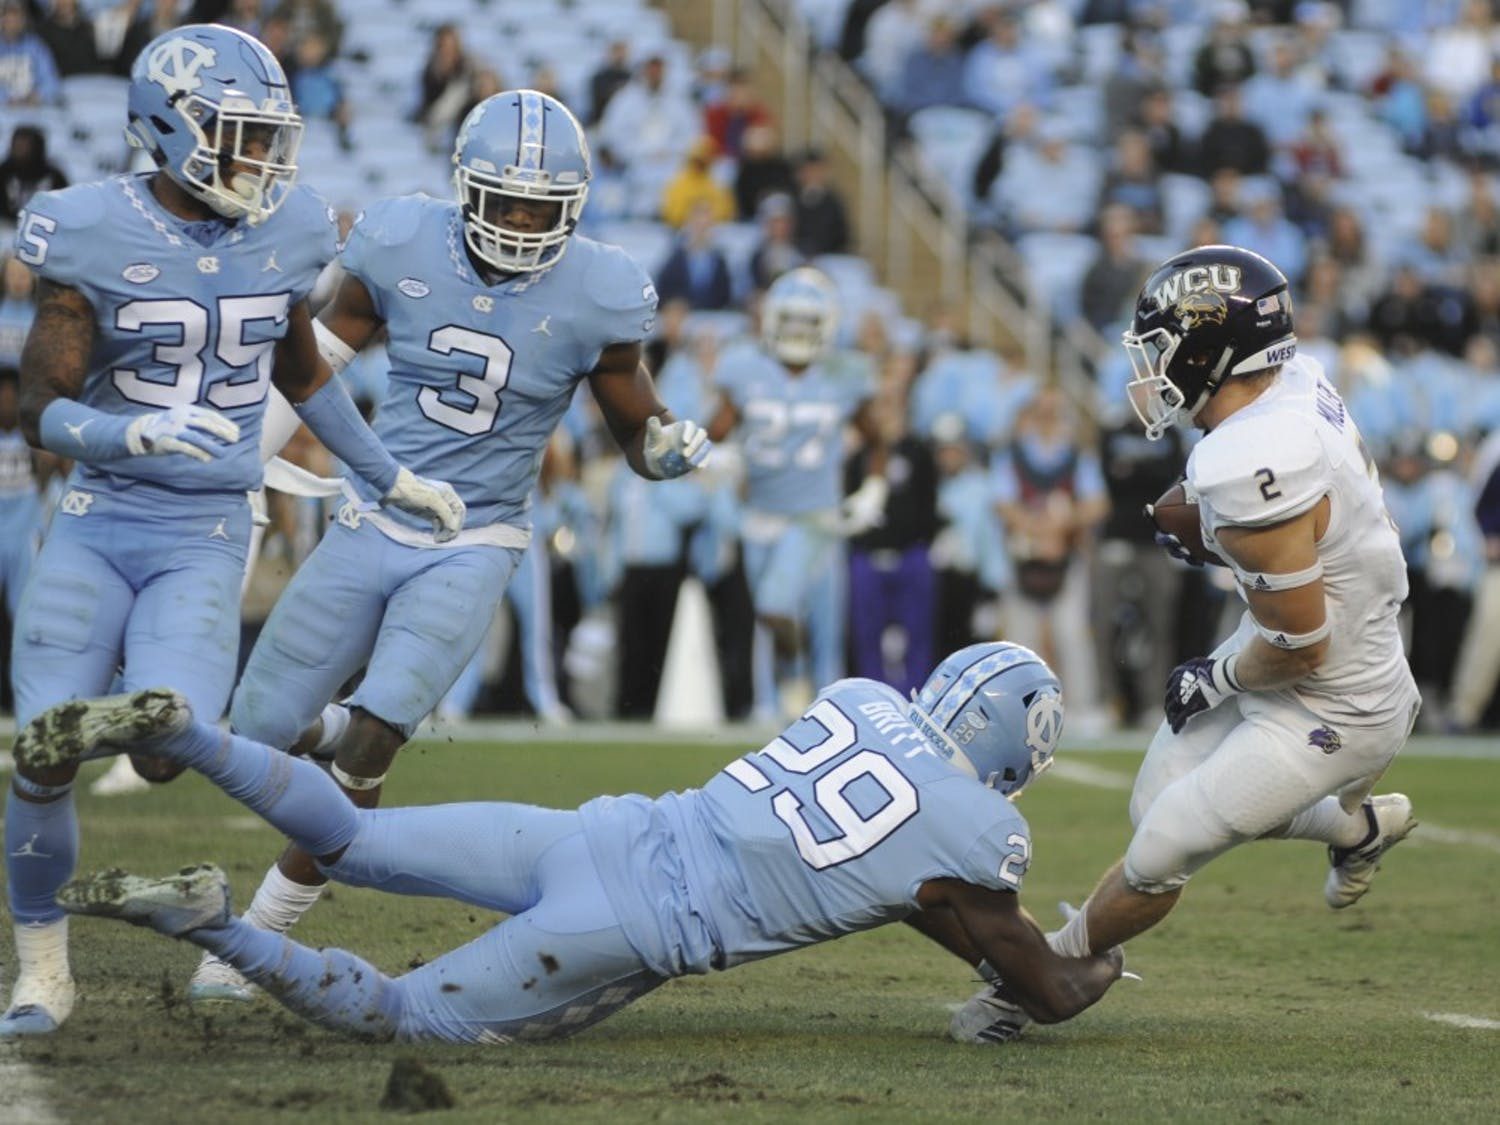 UNC senior safety J.K. Britt (29) grabs WCU redshirt junior wide receiver Nate Mullen (2) to intercept a run on Saturday, Nov. 17, 2018, in Kenan Memorial Stadium. The Tar Heels won 49-26 against Western Carolina.